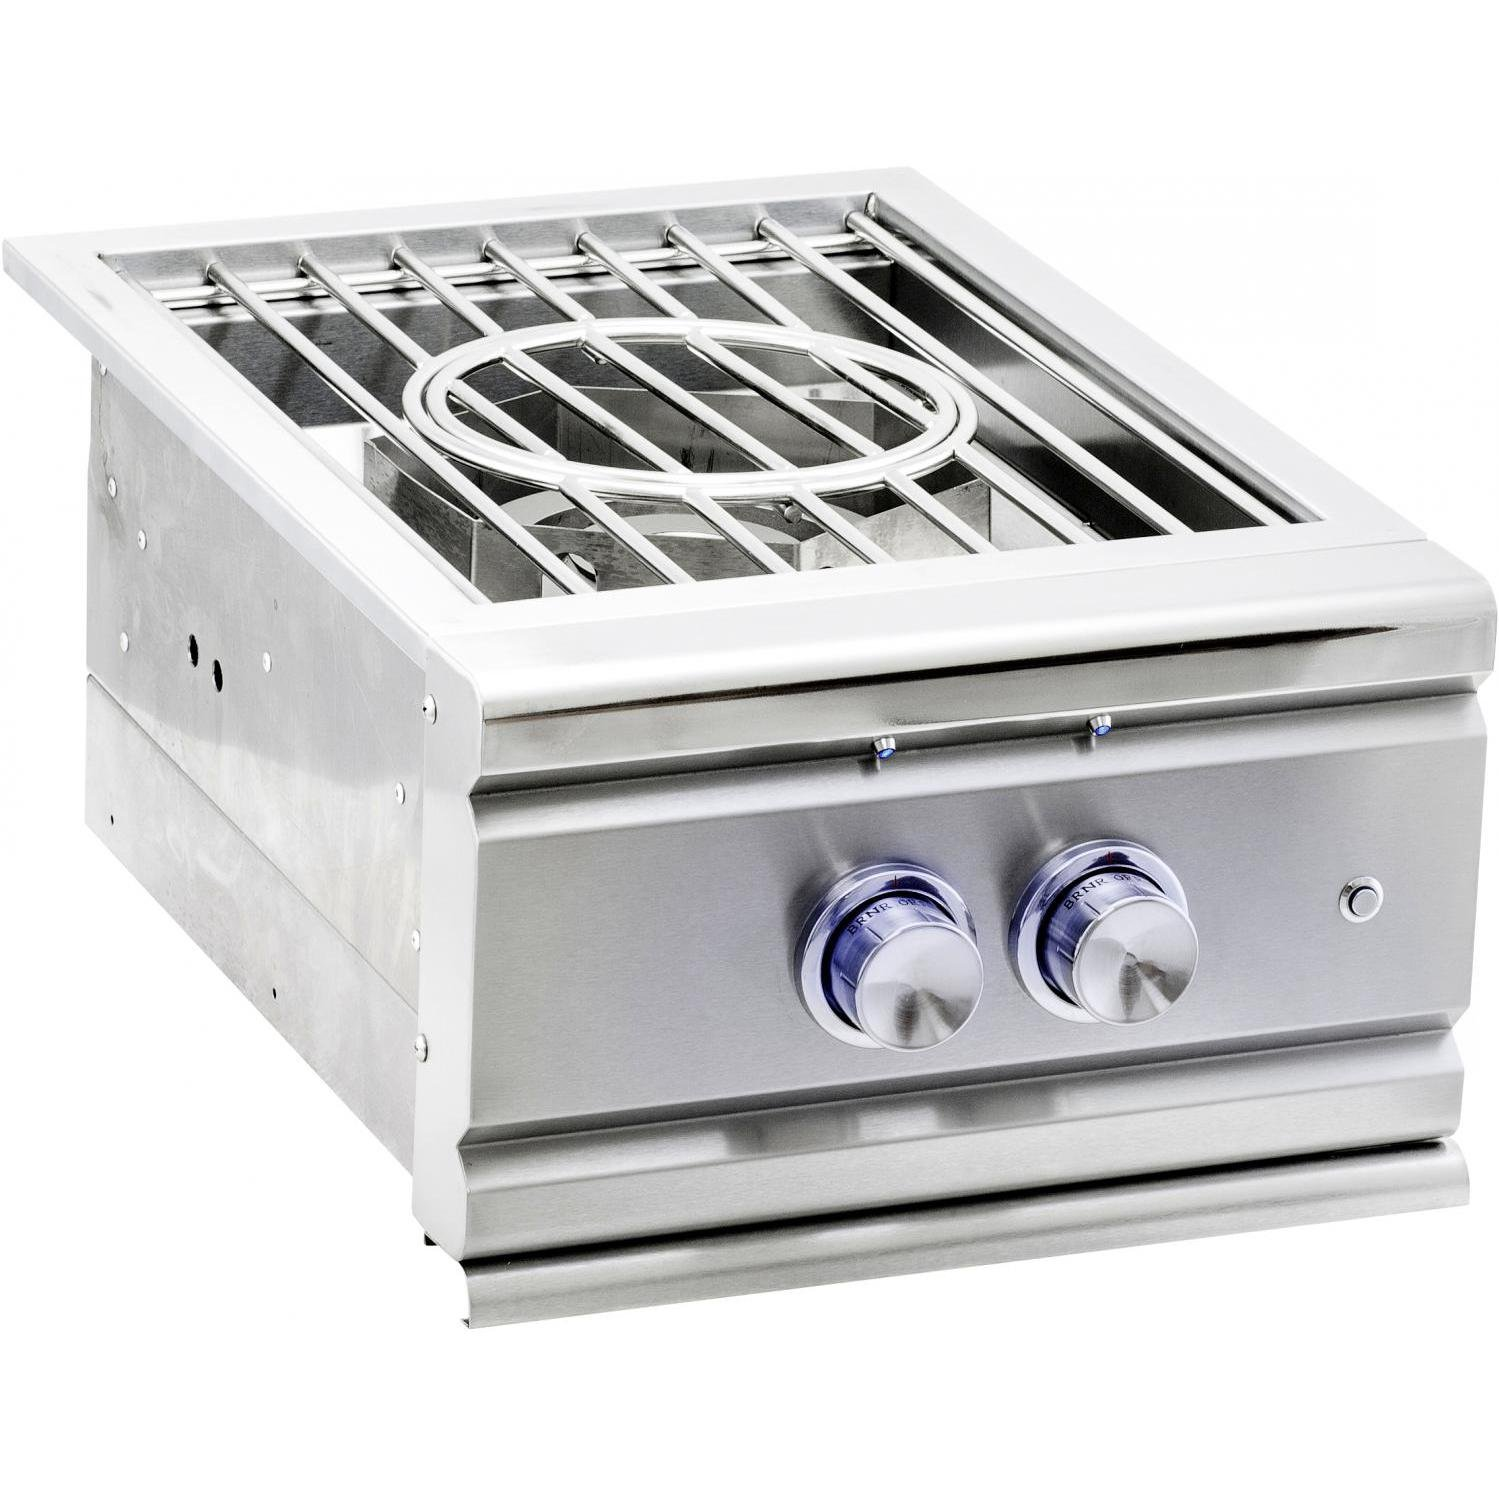 Summerset Trl Built-in Natural Gas Power Burner W/ Stainless Steel Lid - Sspb-1-ng